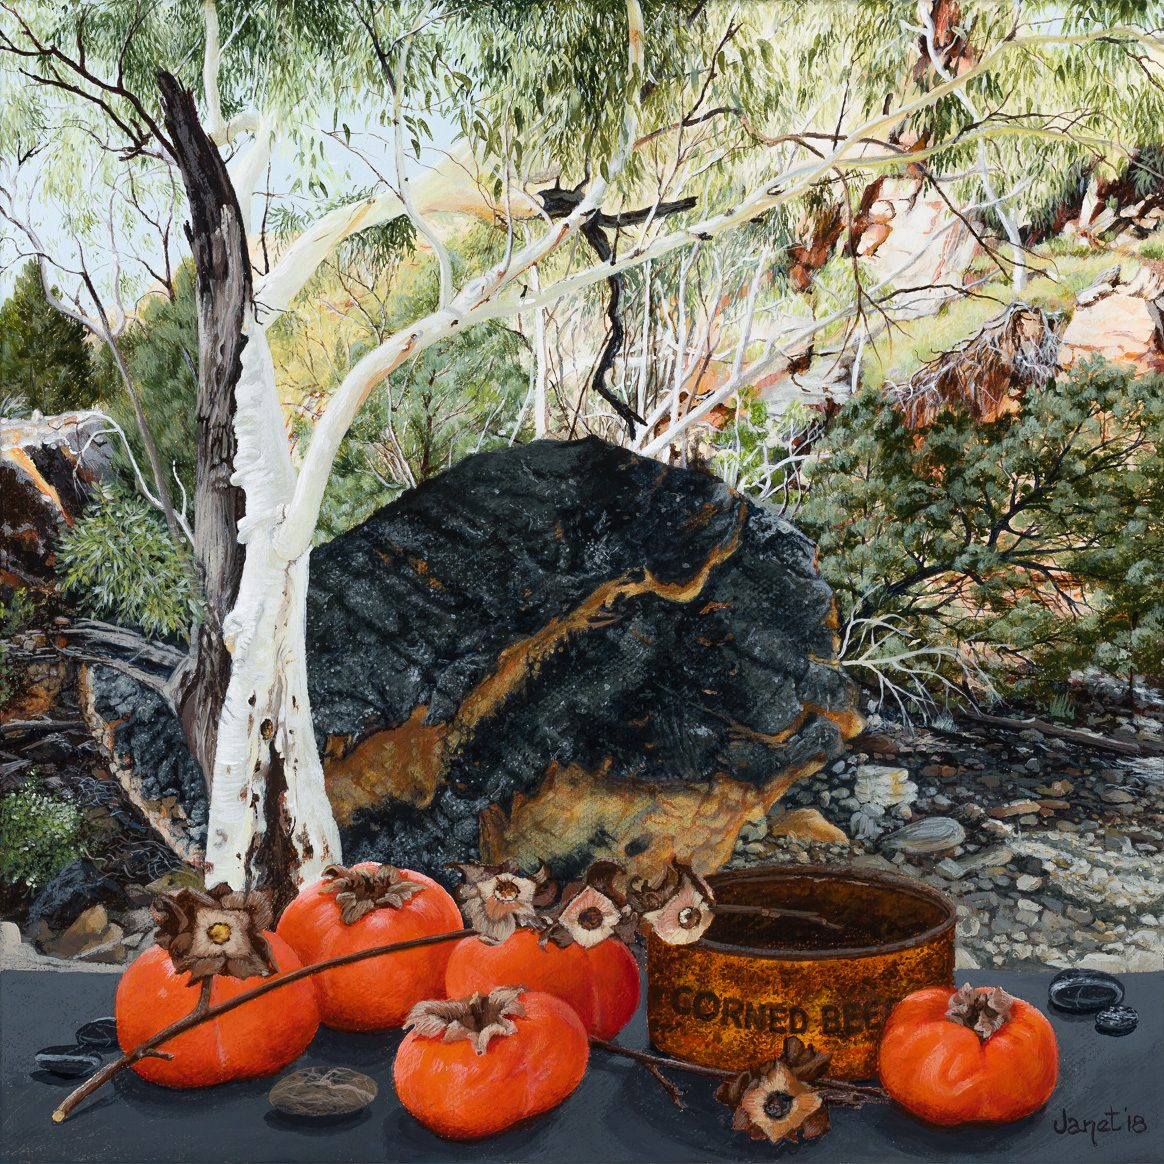 Still Life with Persimmons, Angkerle, (Standley Chasm), Janet Green 2018